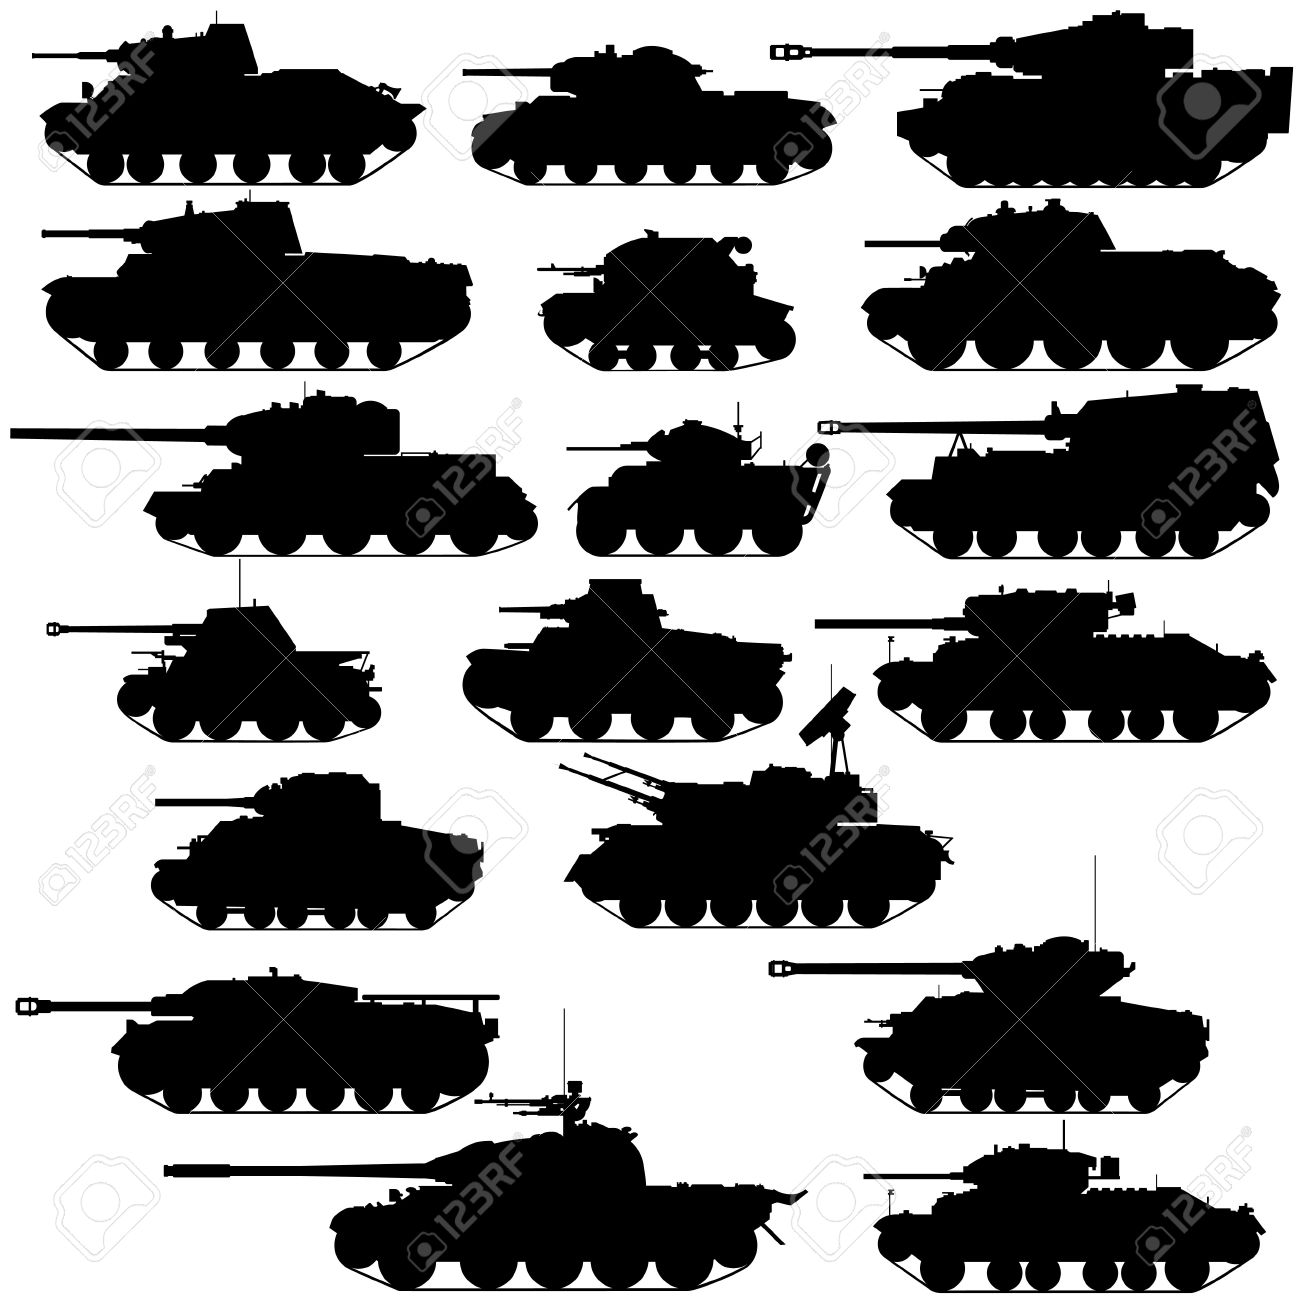 The contours of the old tanks. Illustration on white background. Stock Vector - 15806078